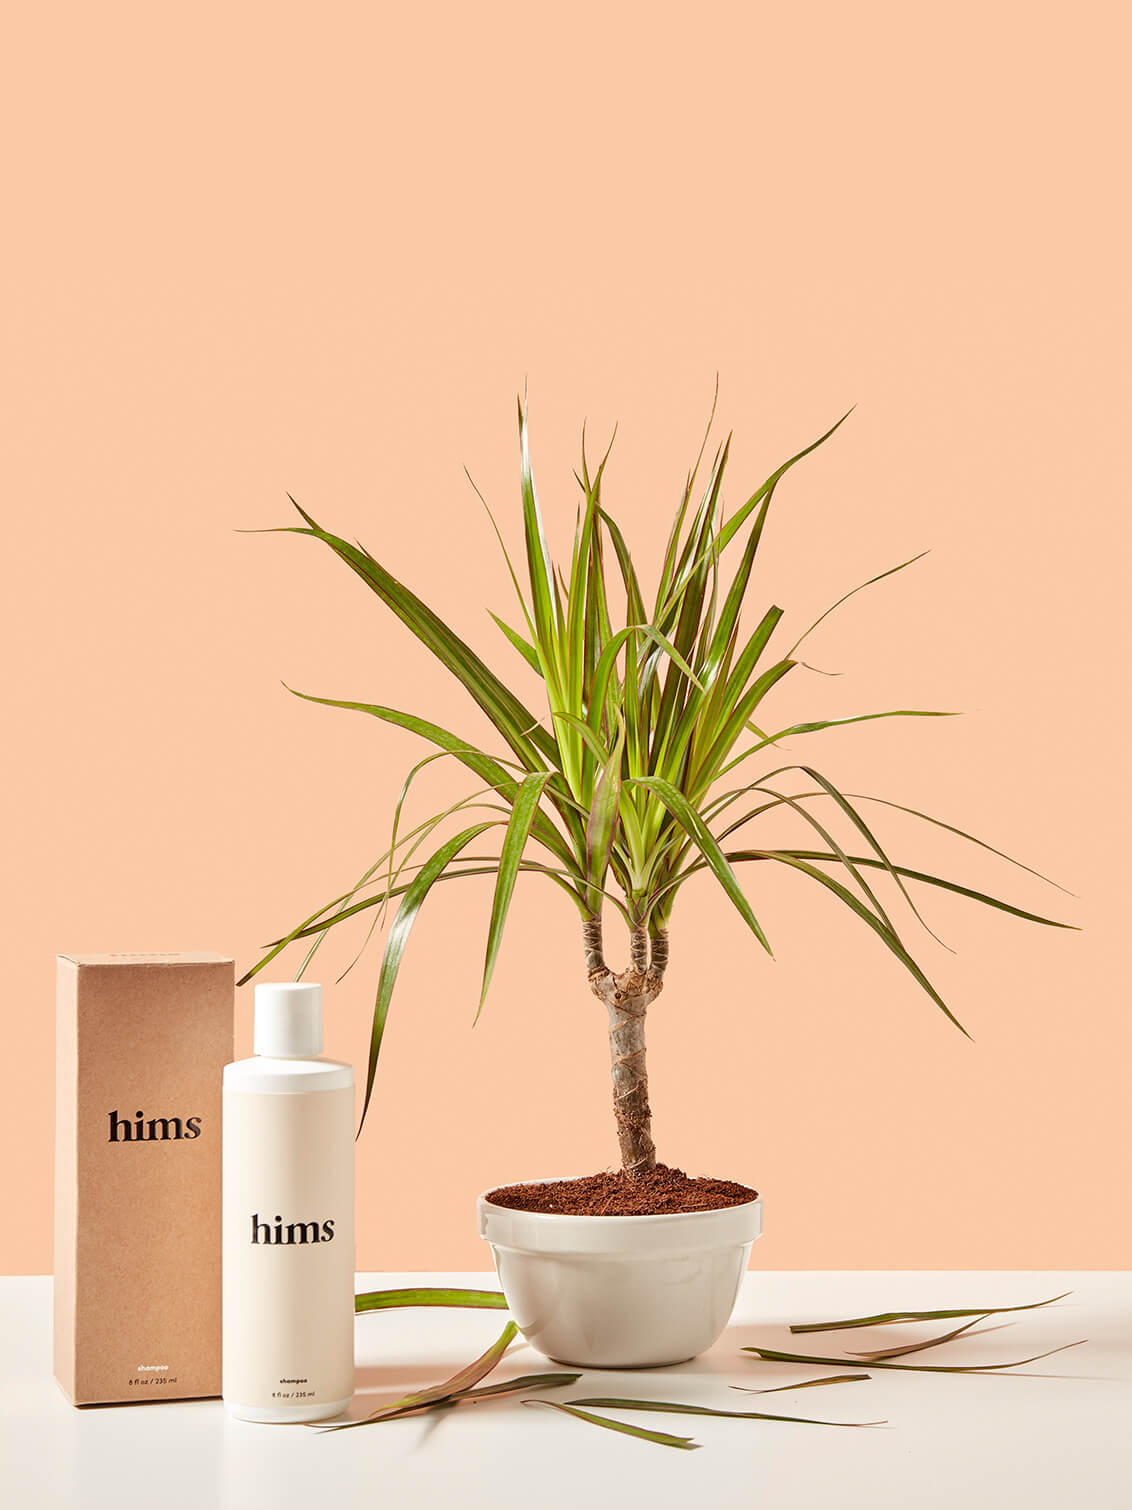 A plant with its leaves falling off beside Hims products